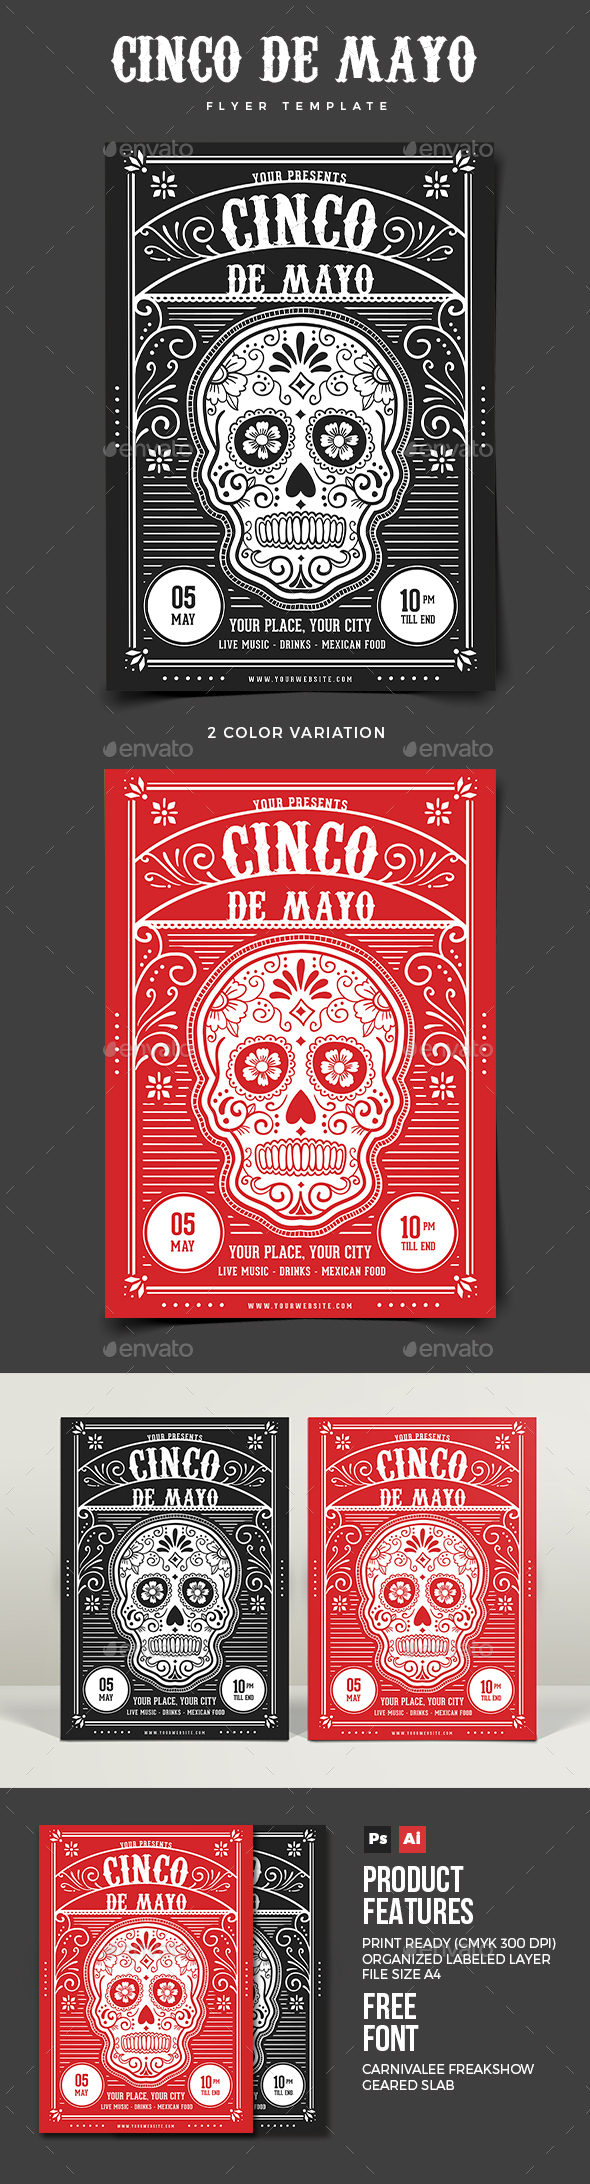 Cinco De Mayo Flyer 02 - Holidays Events